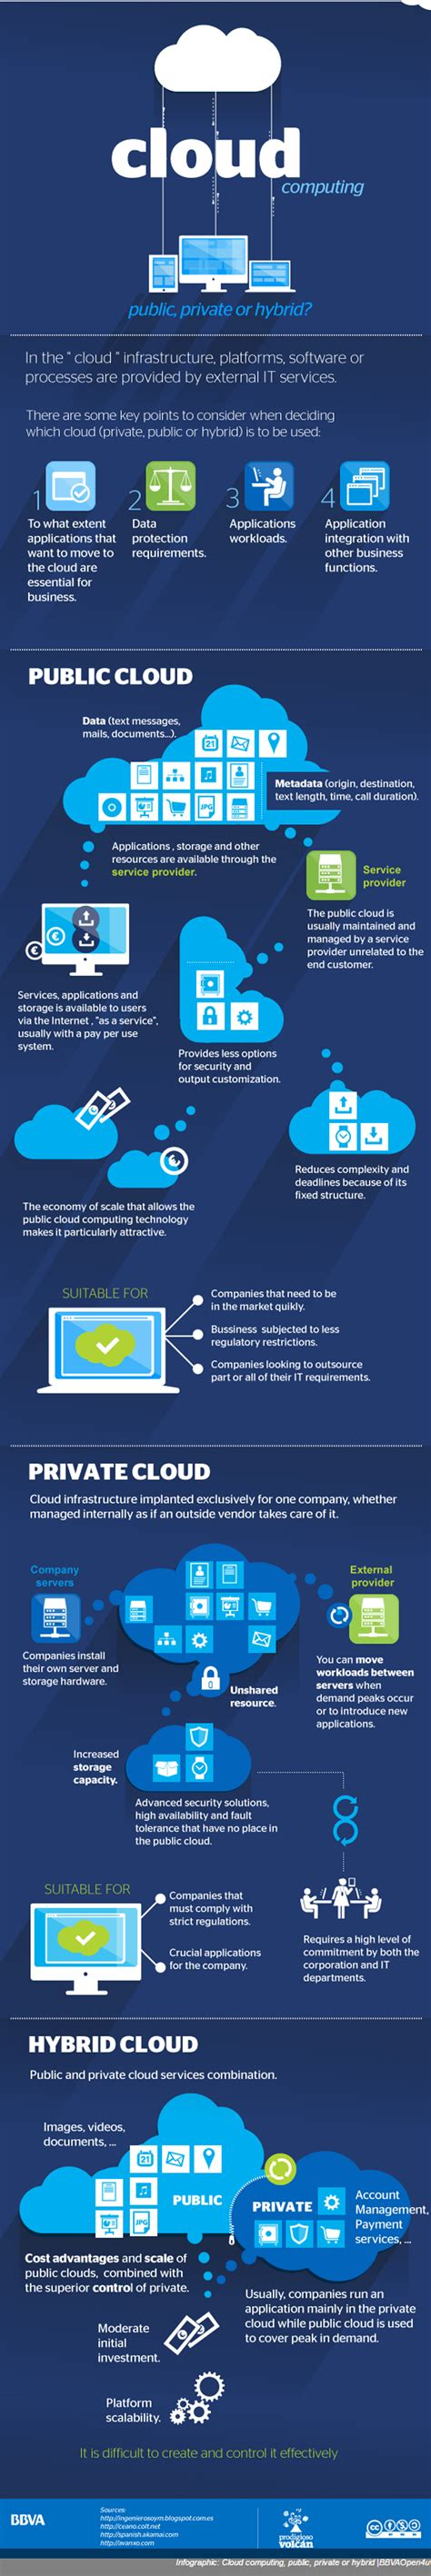 whats in the cloud for you broadband cloud solutions